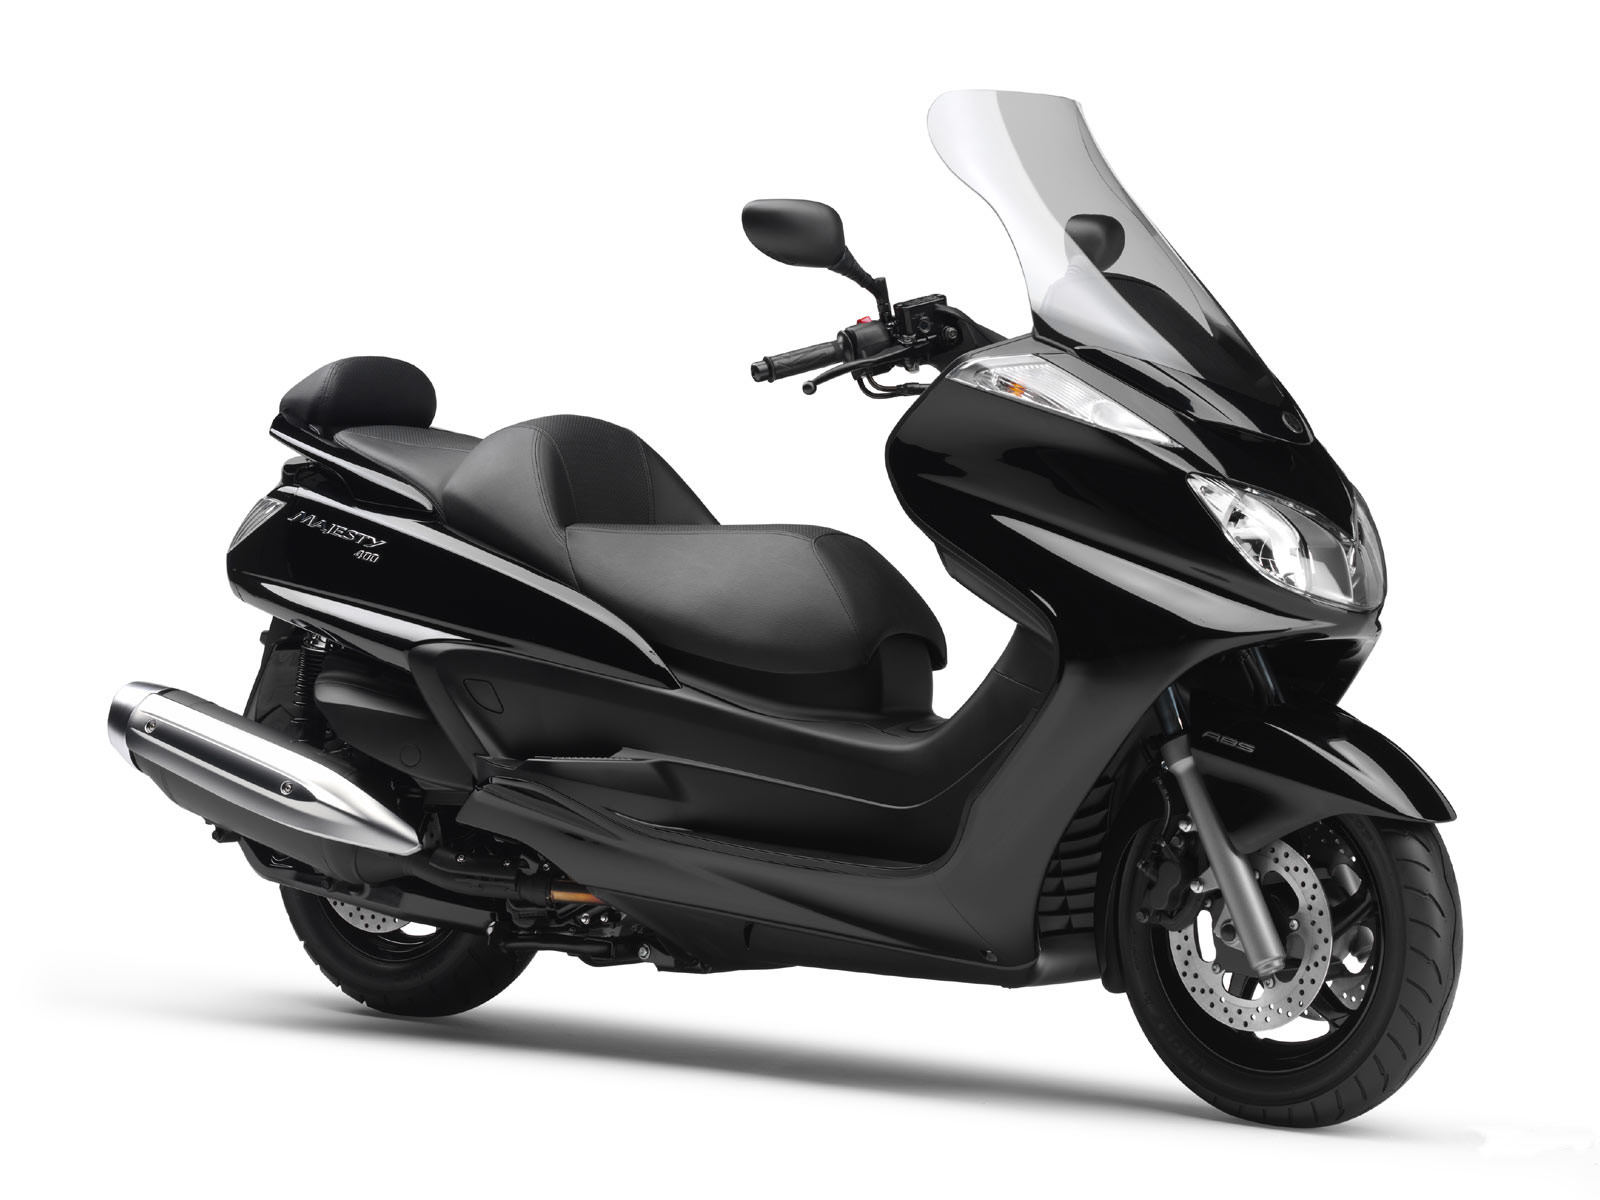 2007 yamaha majesty 400 abs scooter pictures. Black Bedroom Furniture Sets. Home Design Ideas